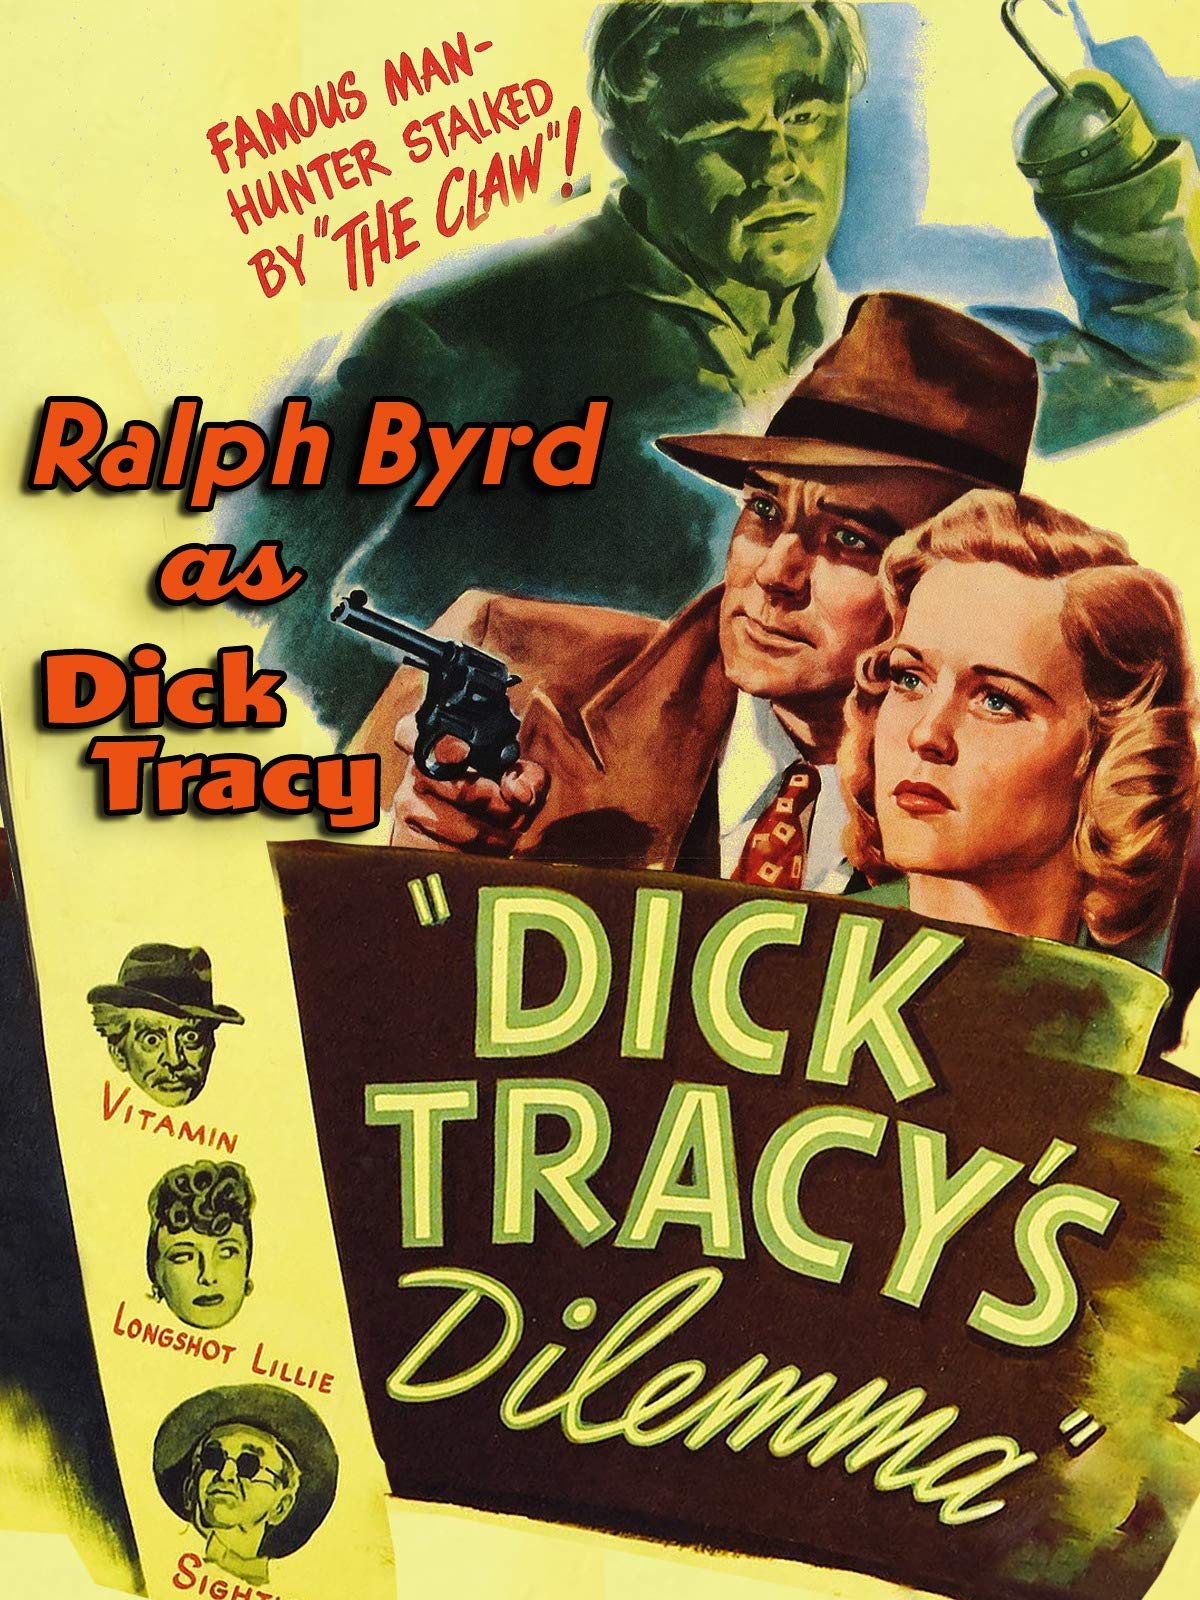 Dick Tracy's Dilemma - Ralph Byrd As Dick Tracy